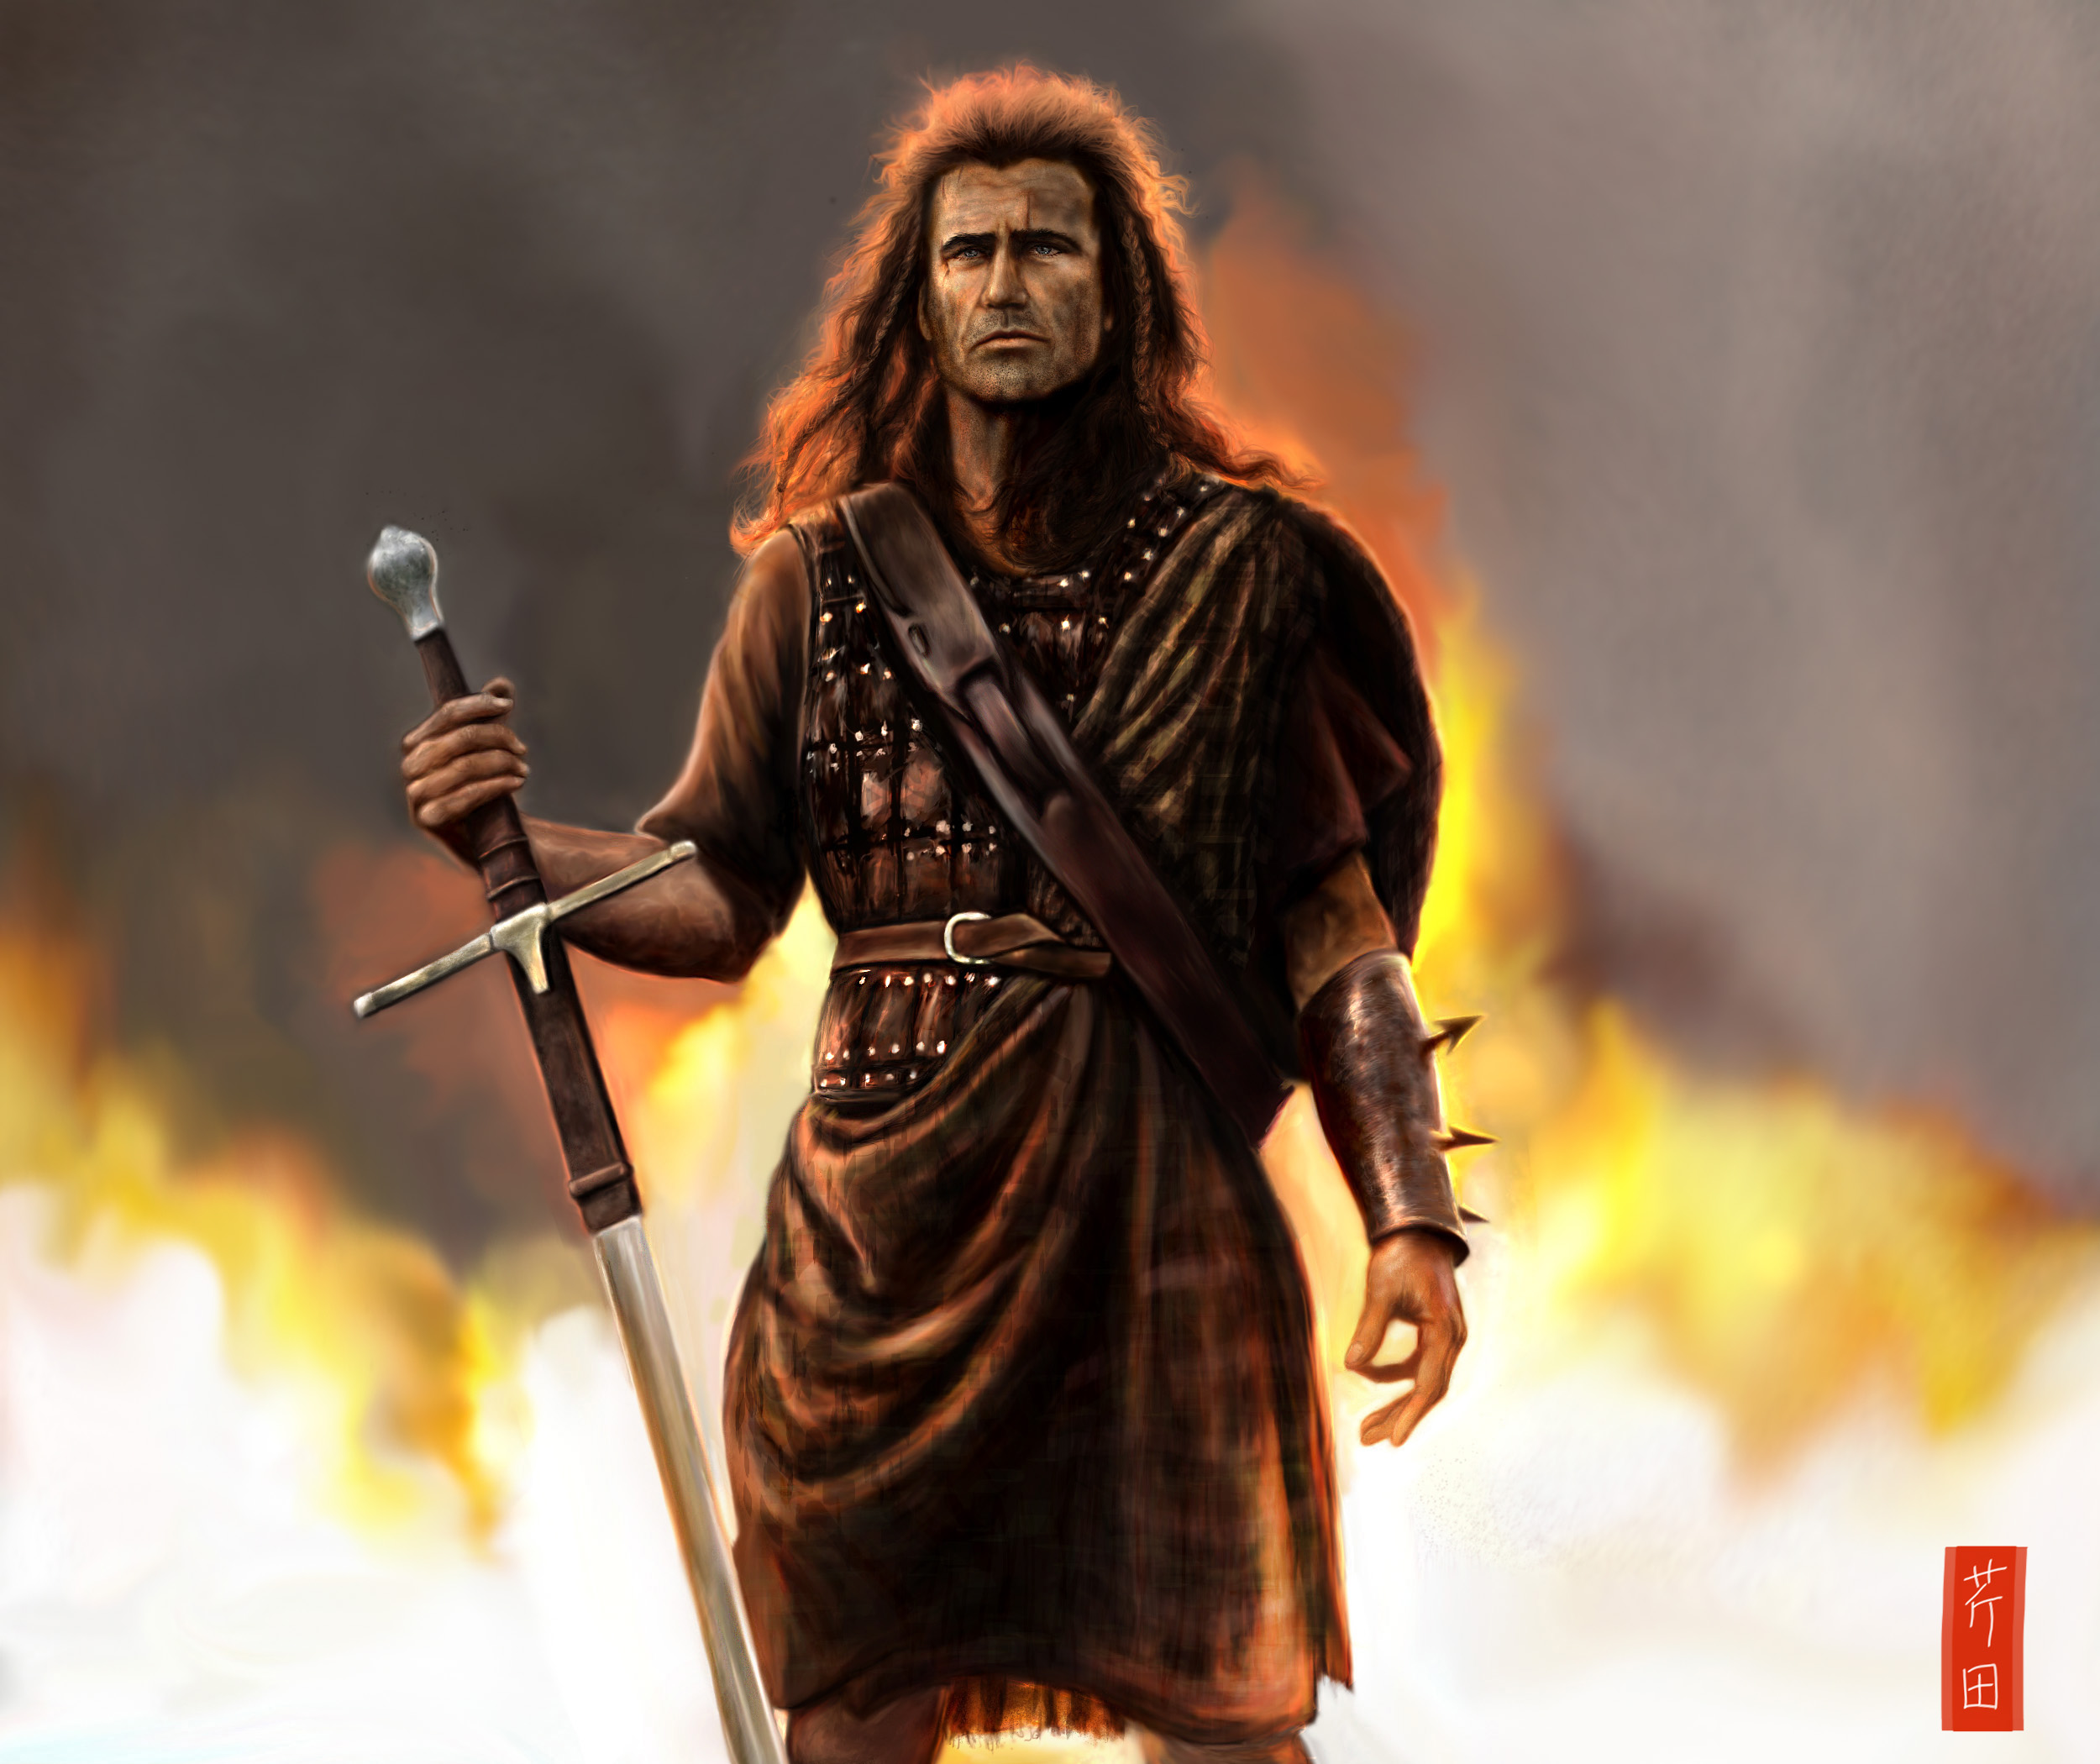 braveheart vs william wallace essay